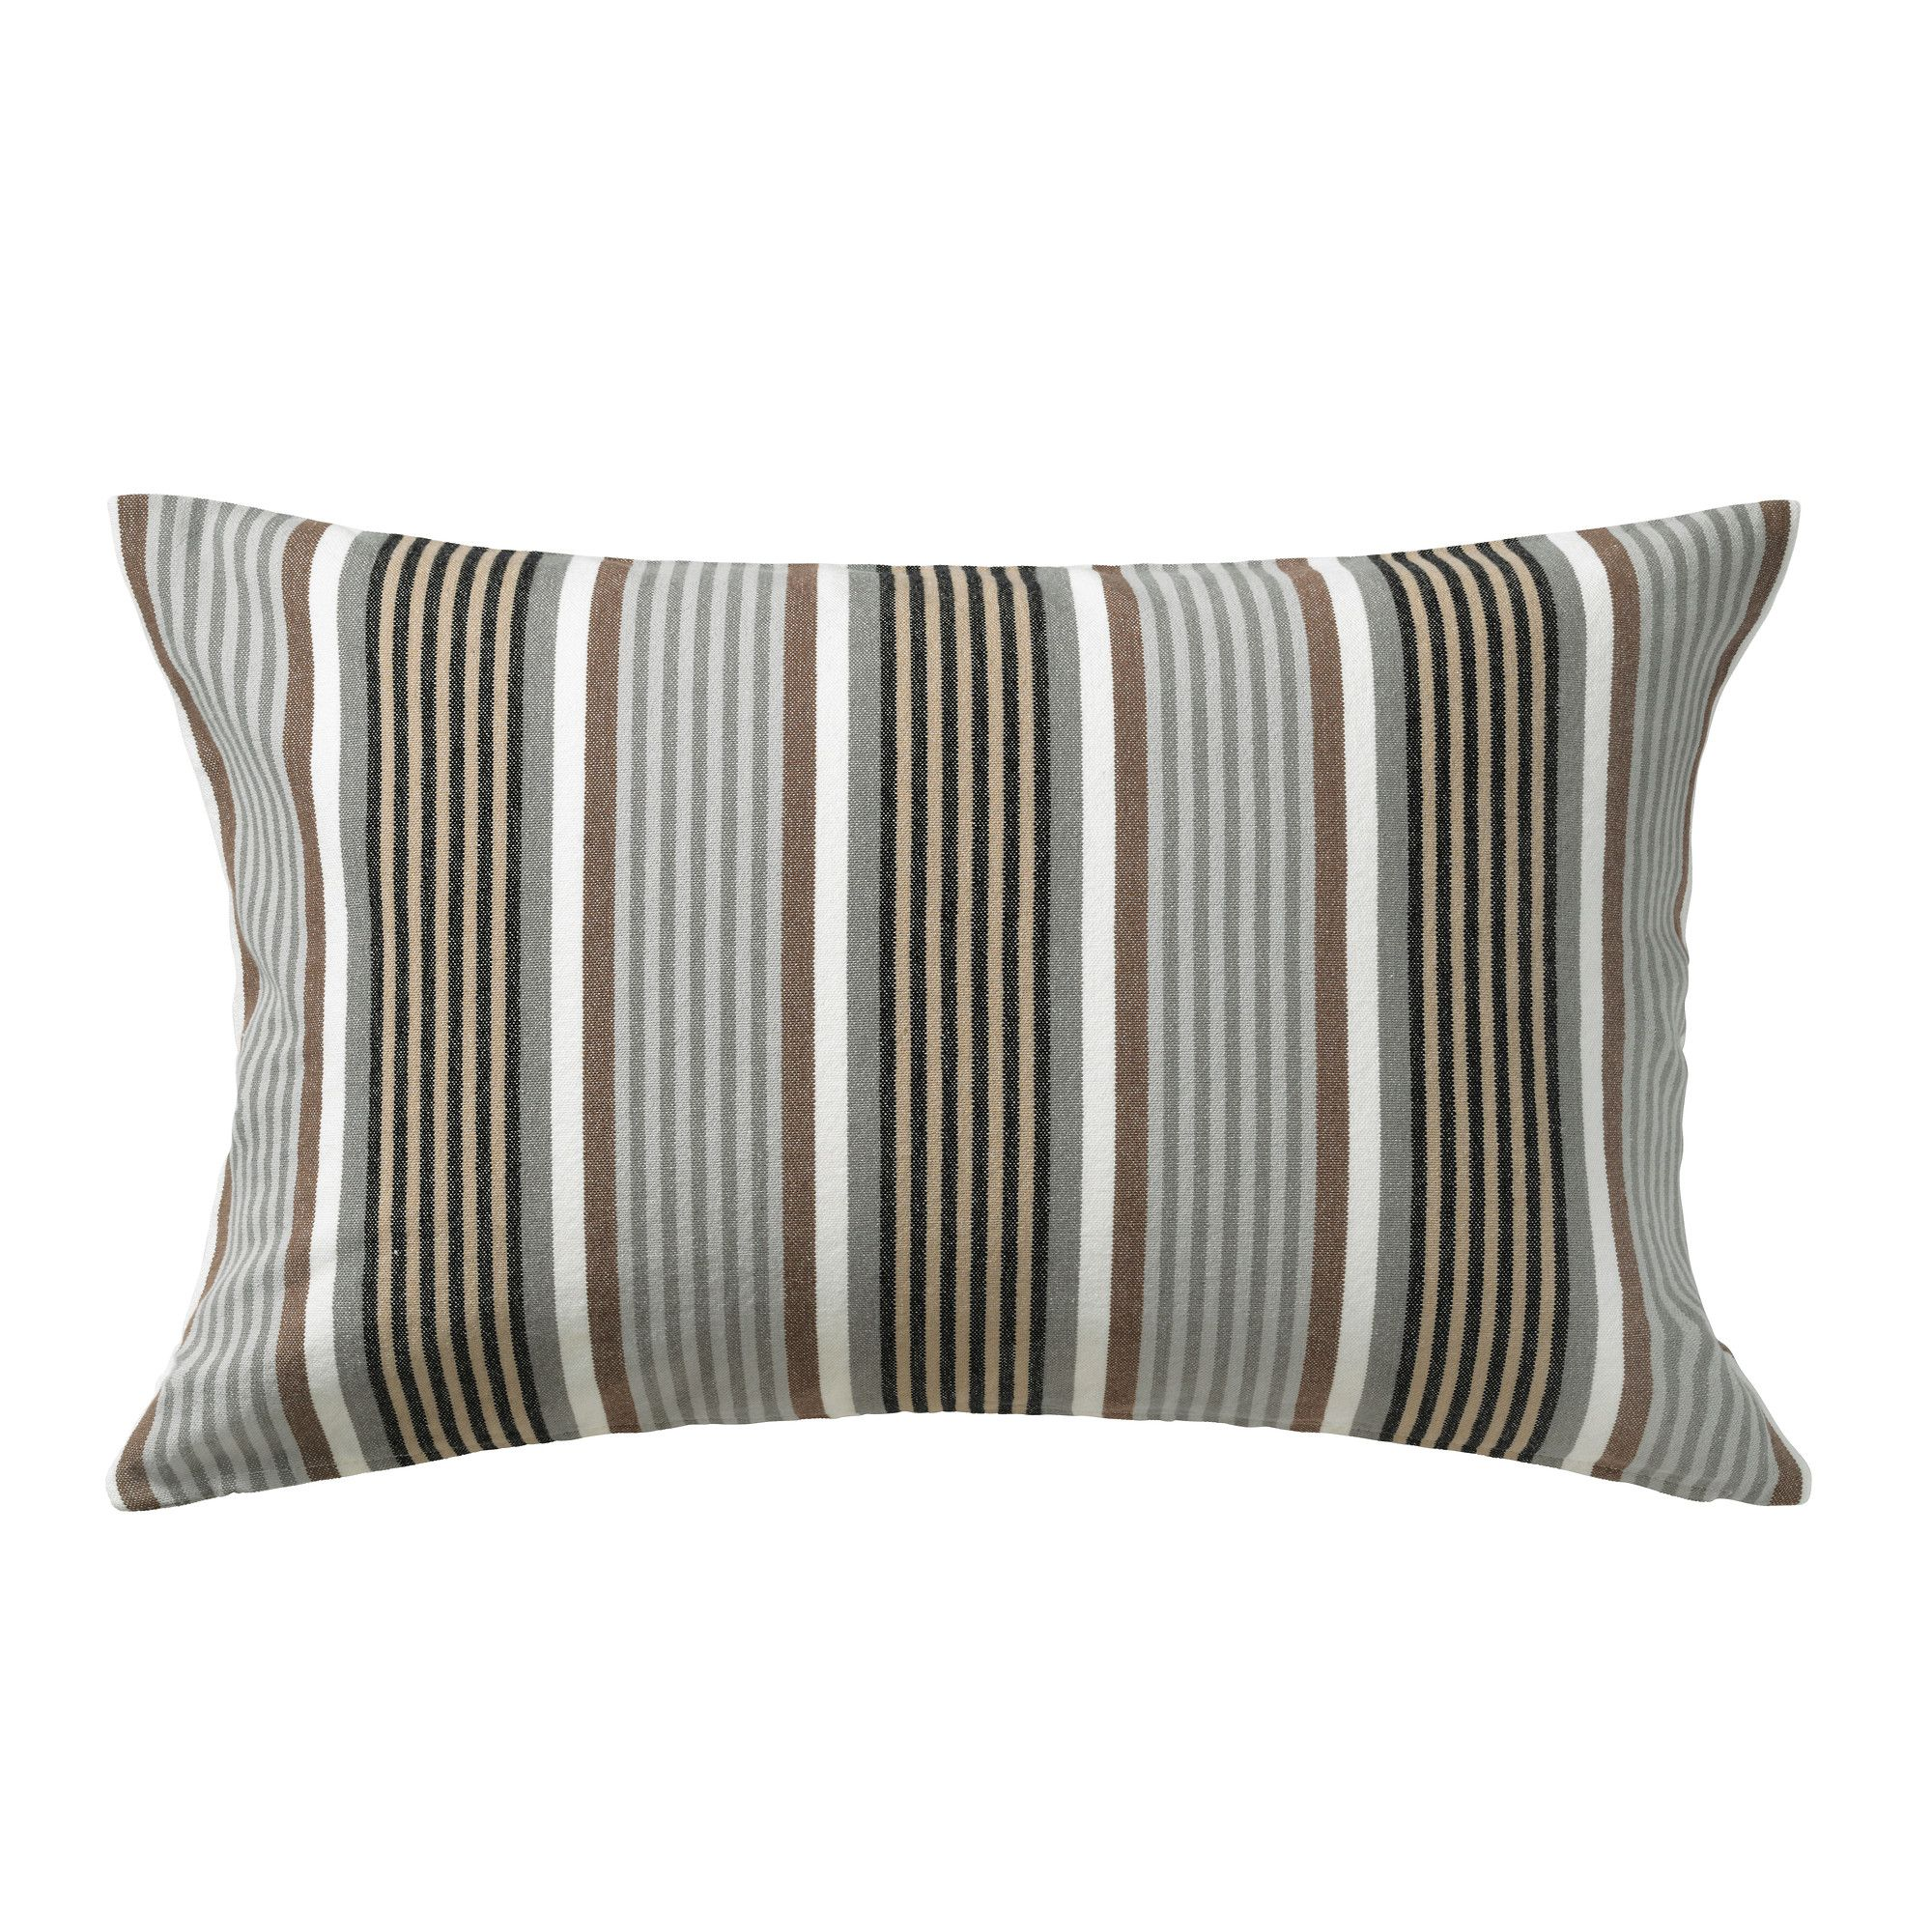 Ragnborg Cushion Cover Ikea 10 16x24 Outdoor Furniture As Already Washed Look